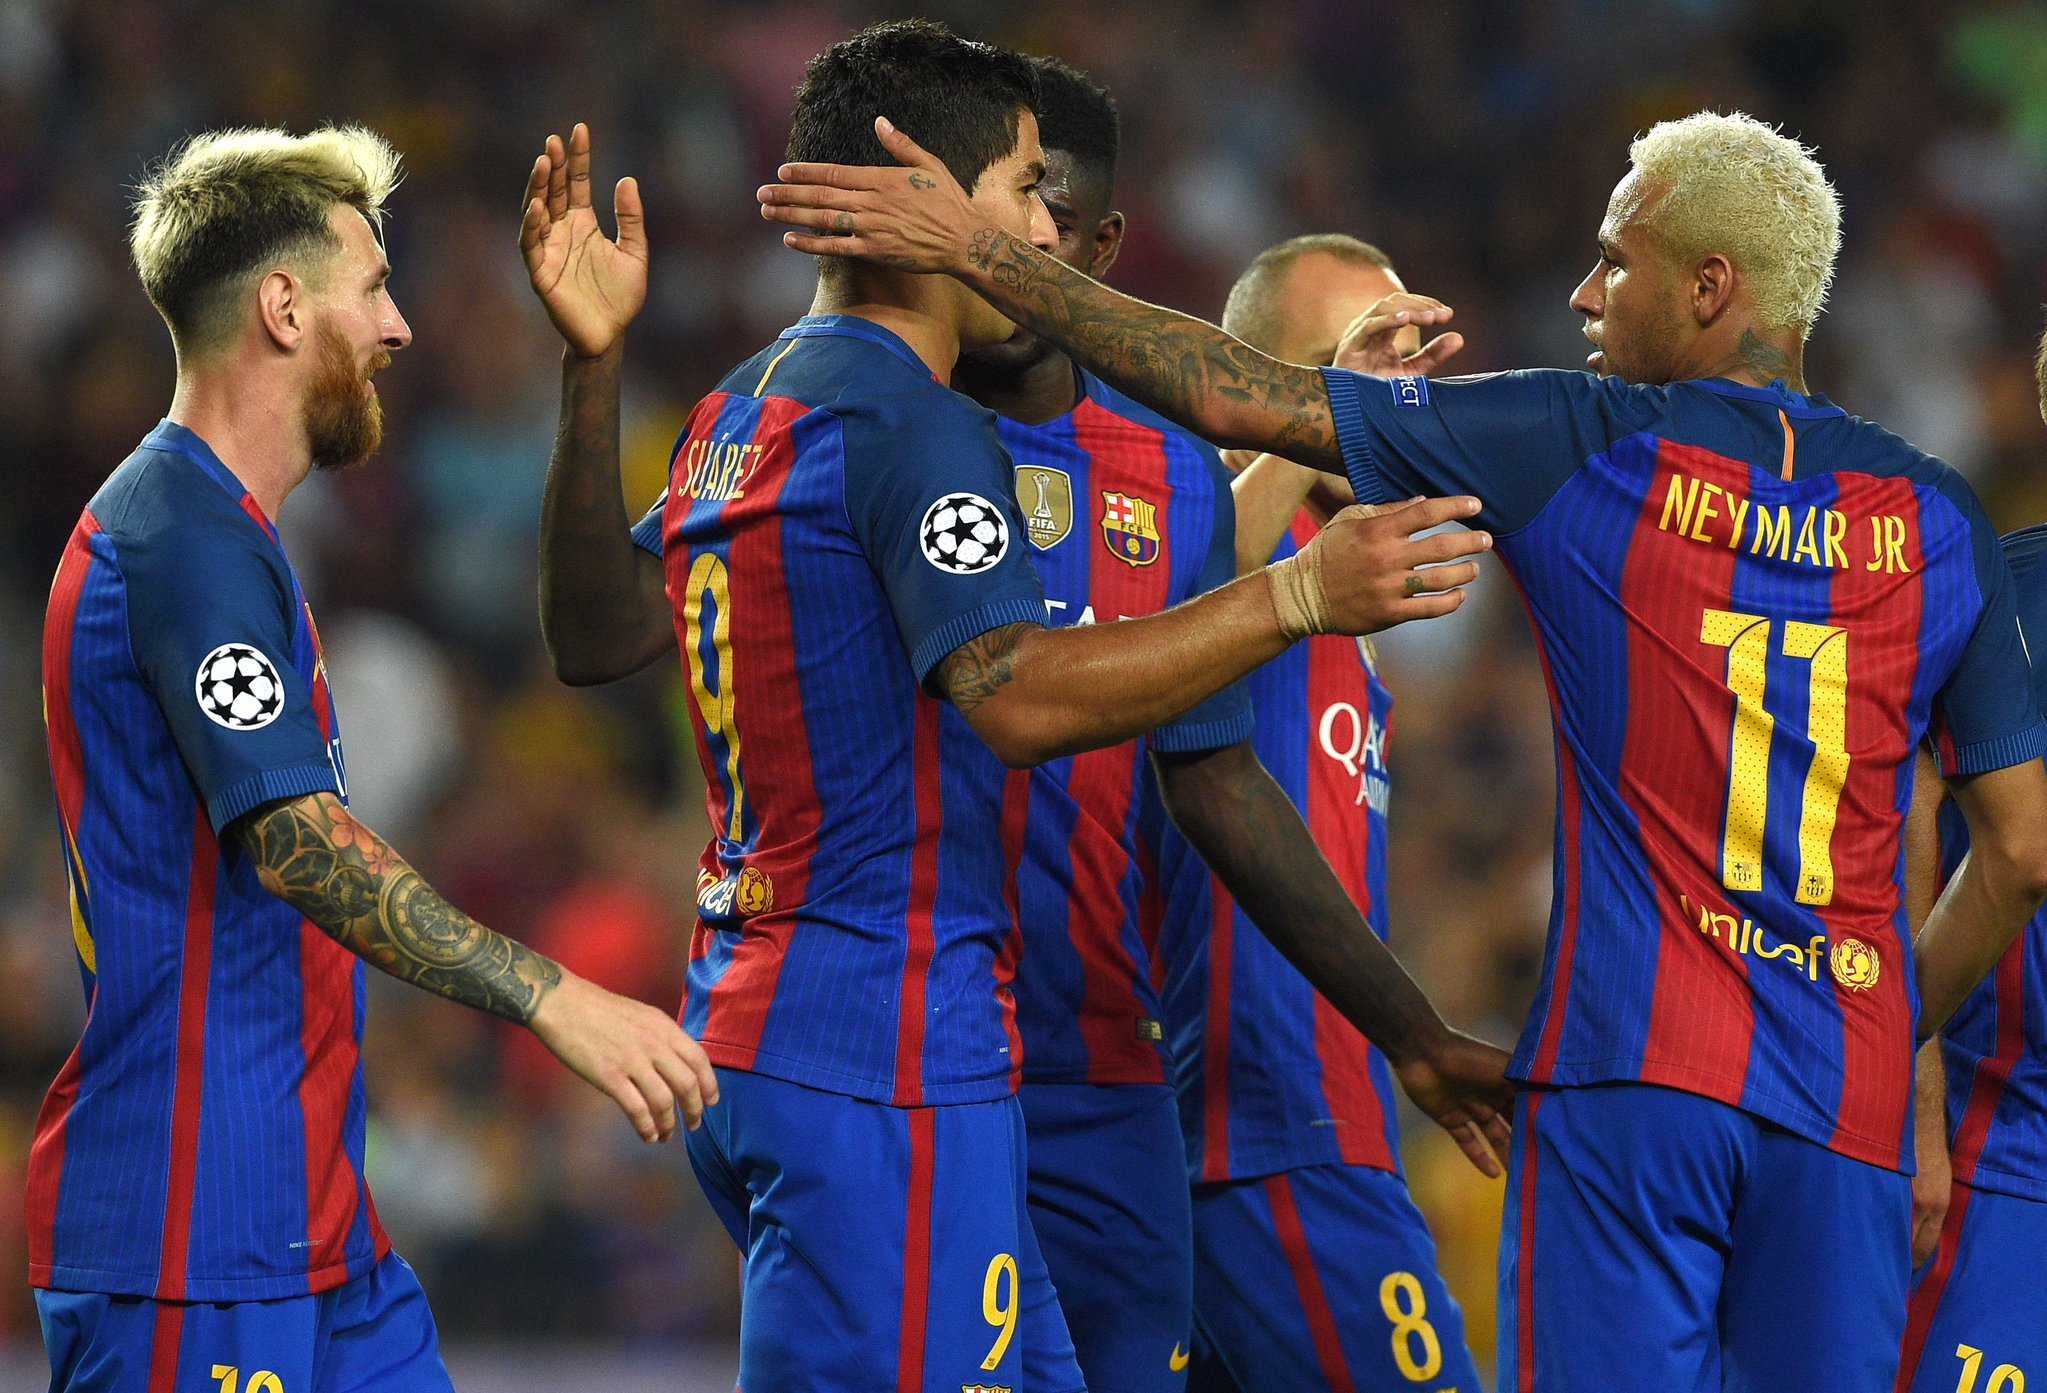 UCL: Iwobi Shines As Arsenal Hold PSG; Messi Hat-trick Fires Barca Past Celtic